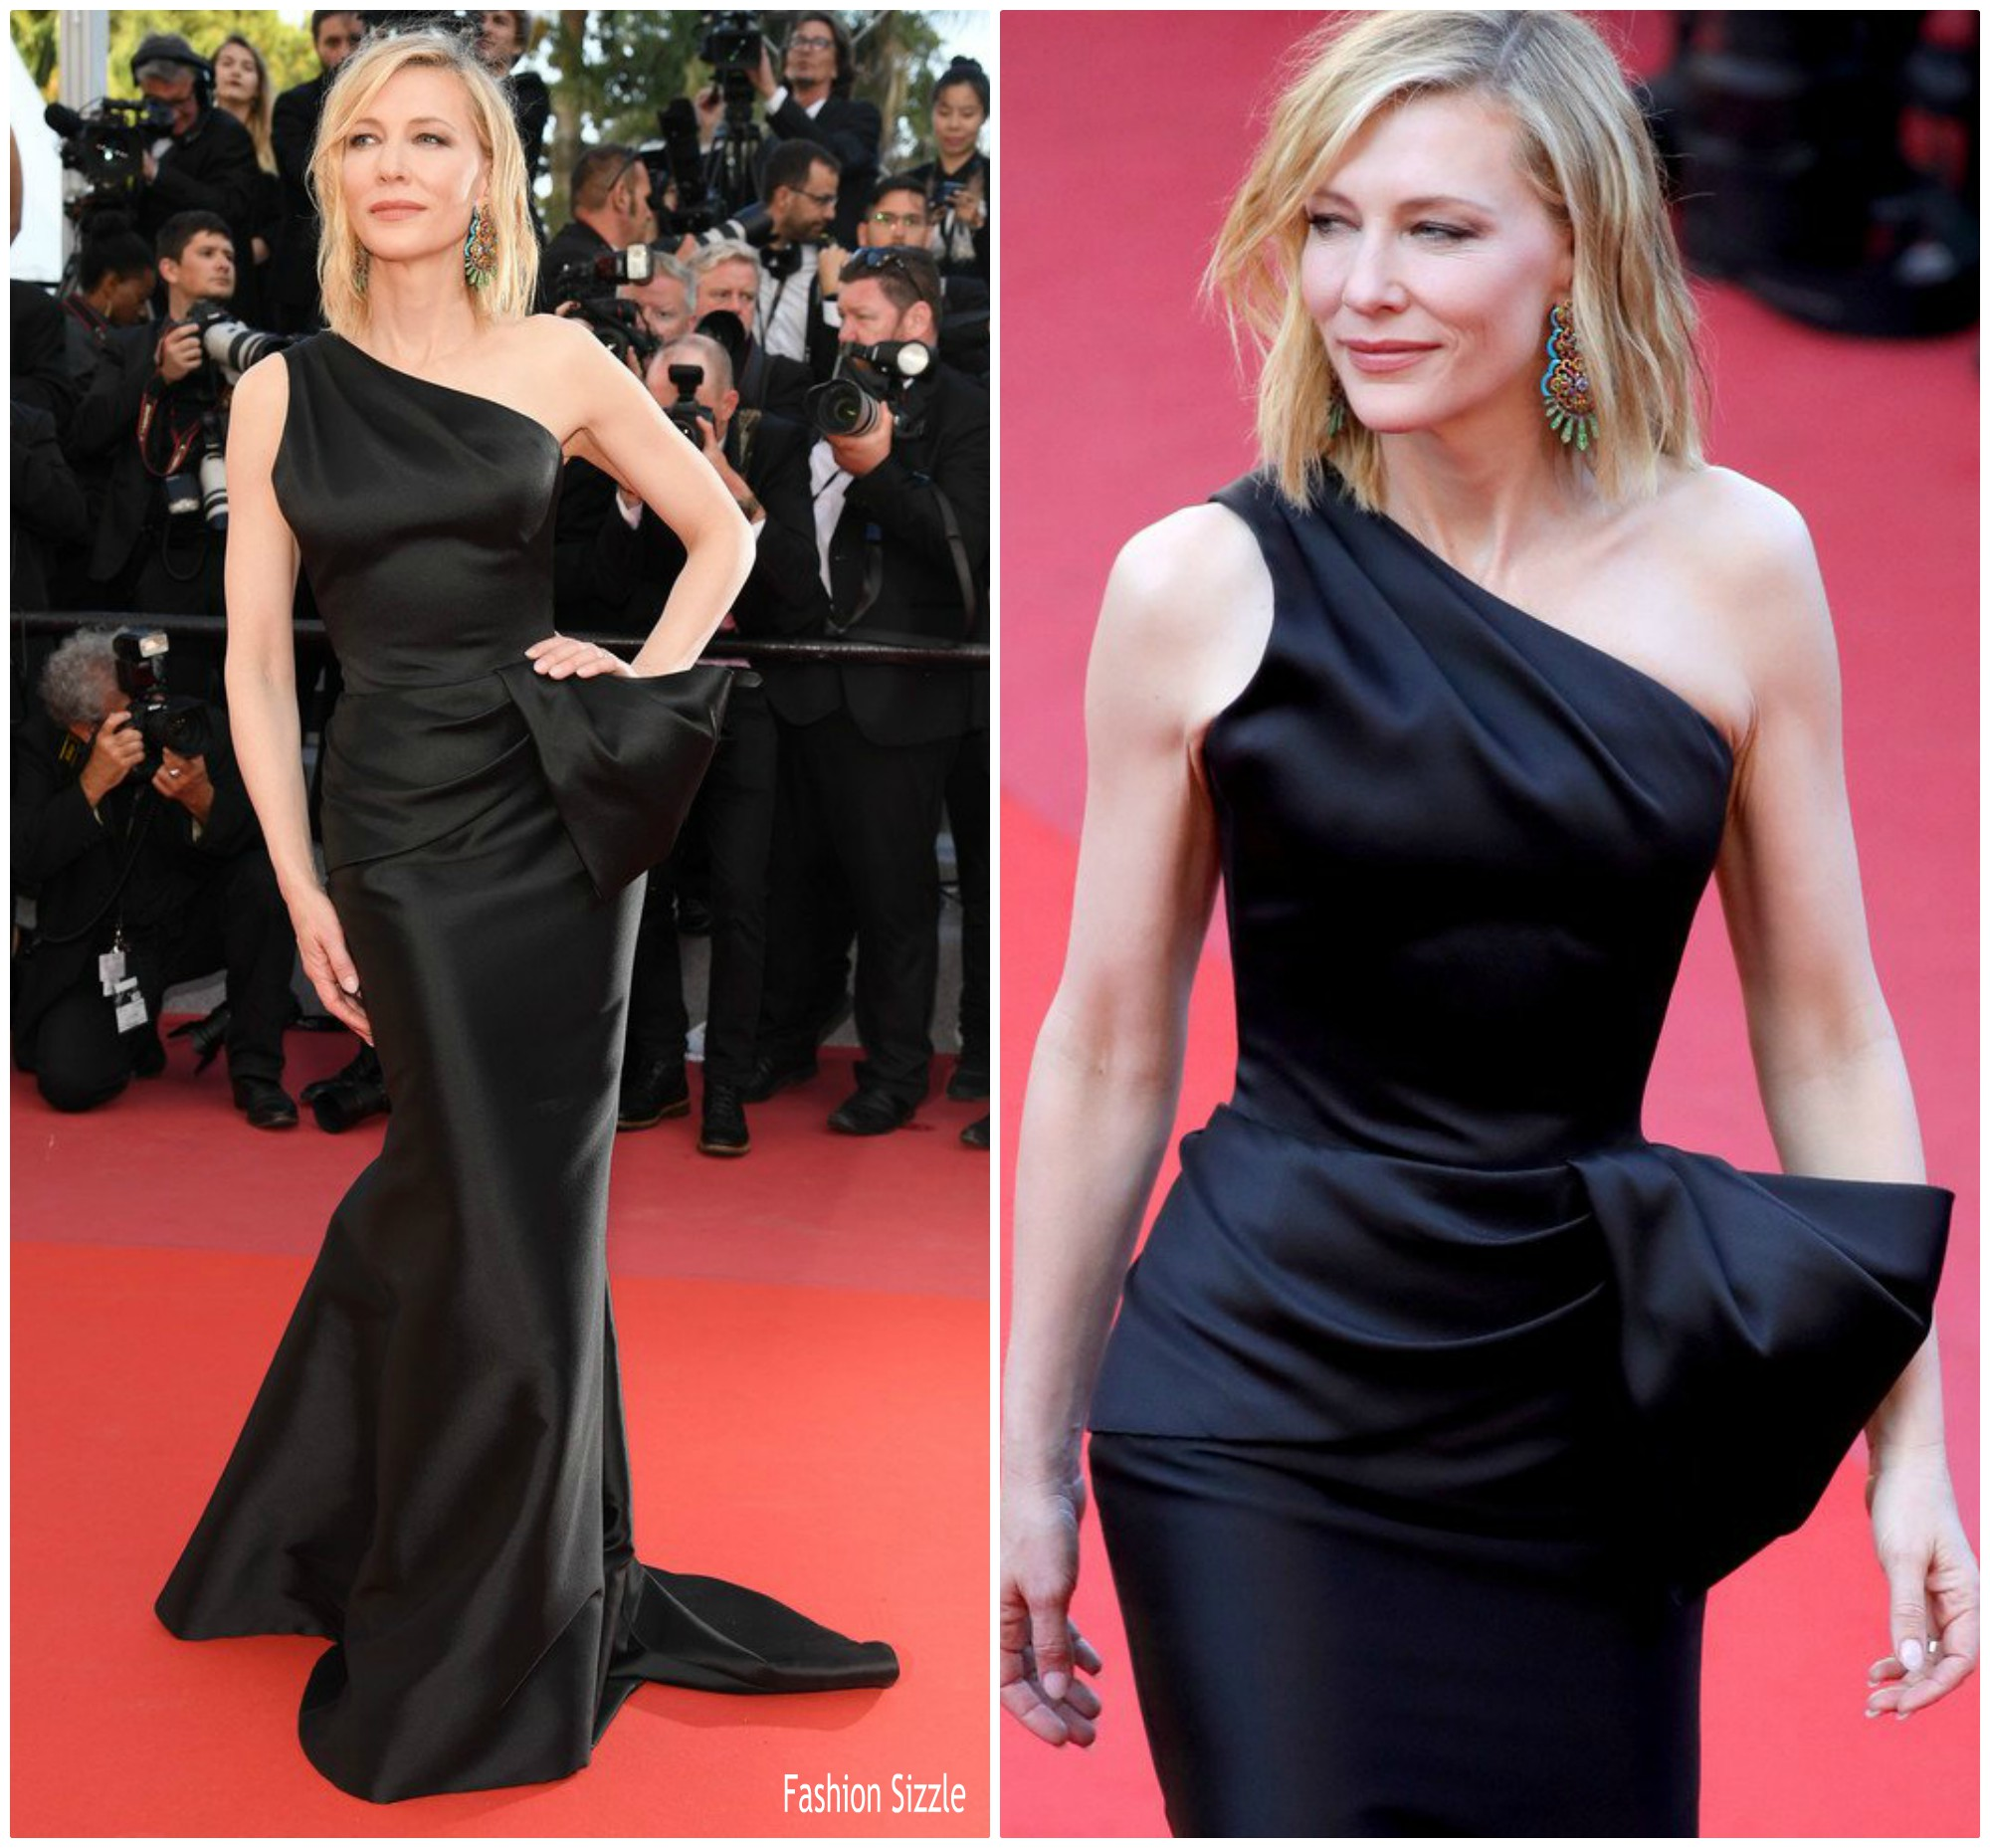 cate-blanchett-in-armani-prive-jurors-prive-jurors-protest-at-the-girls-of-the-sun-les-filles-du-soleil-cannes-film-festival-premiere